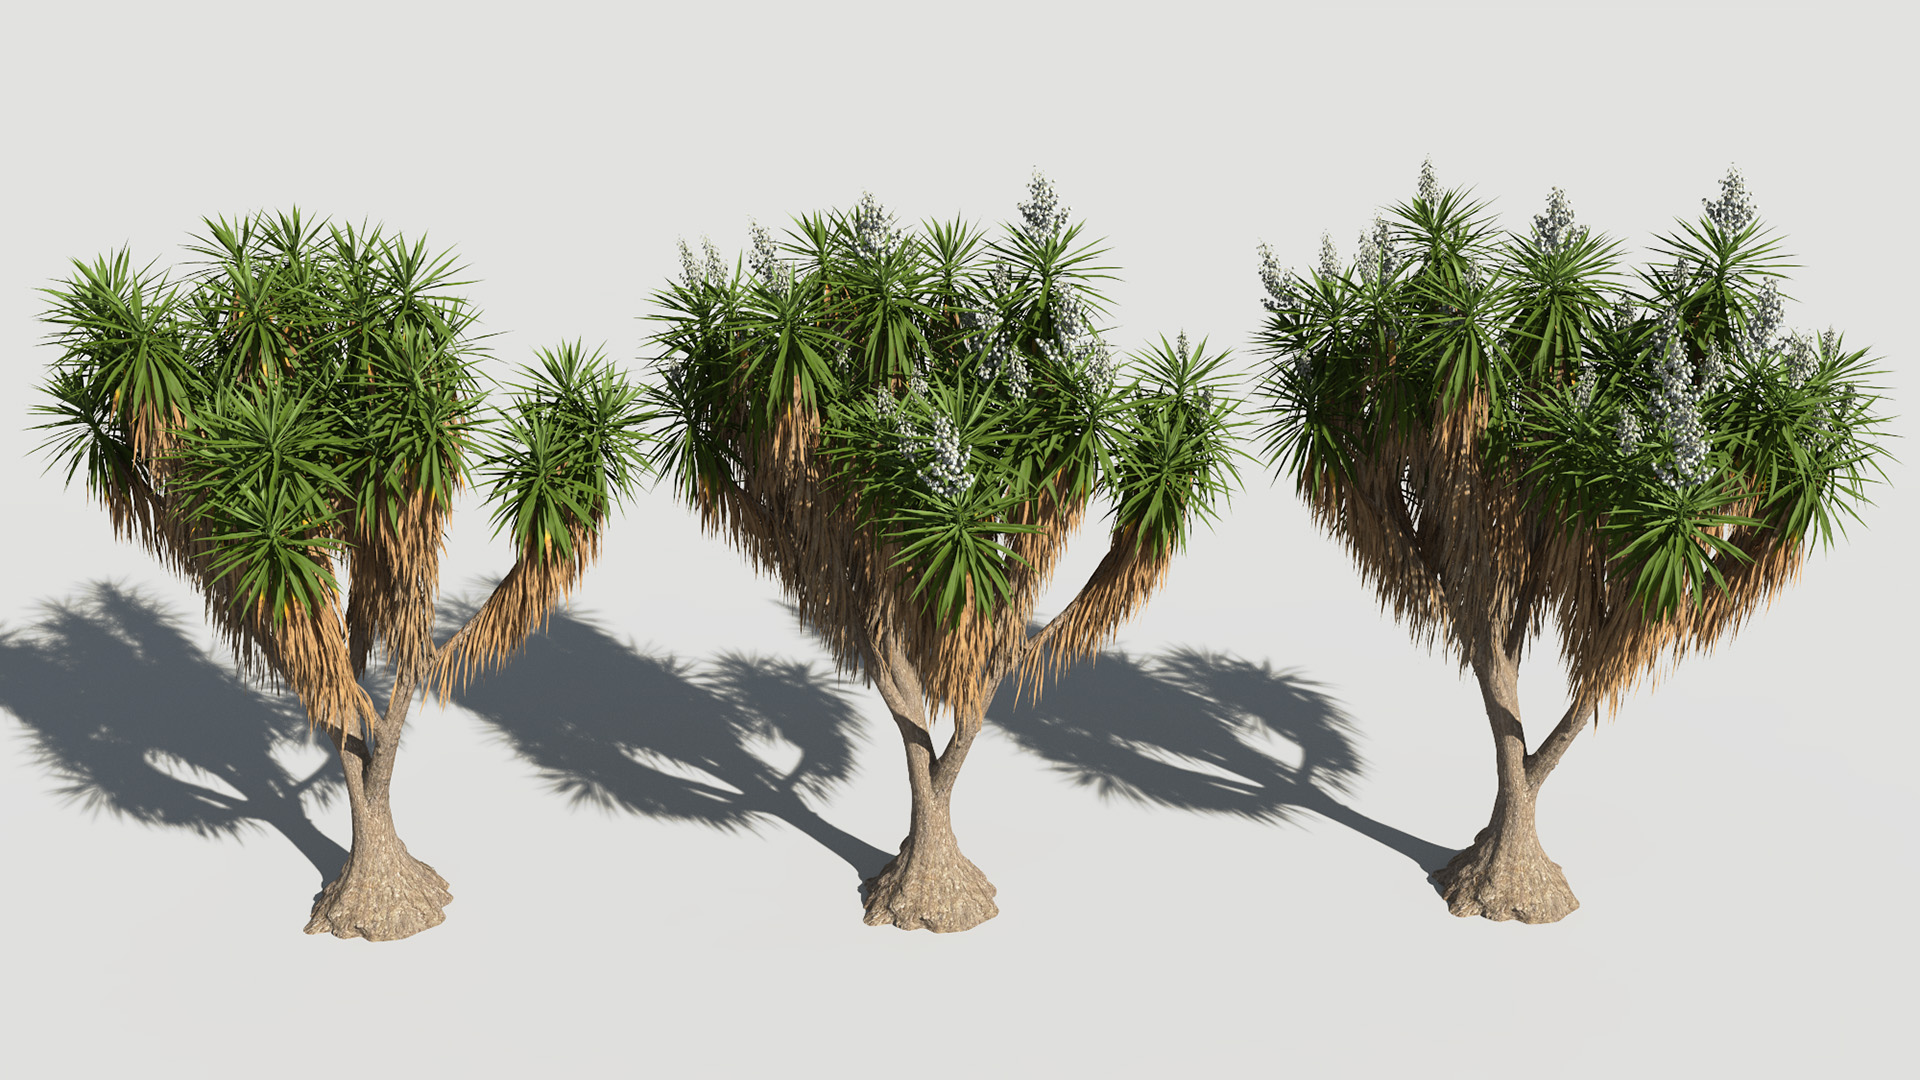 3D model of the Spineless yucca Yucca elephantipes